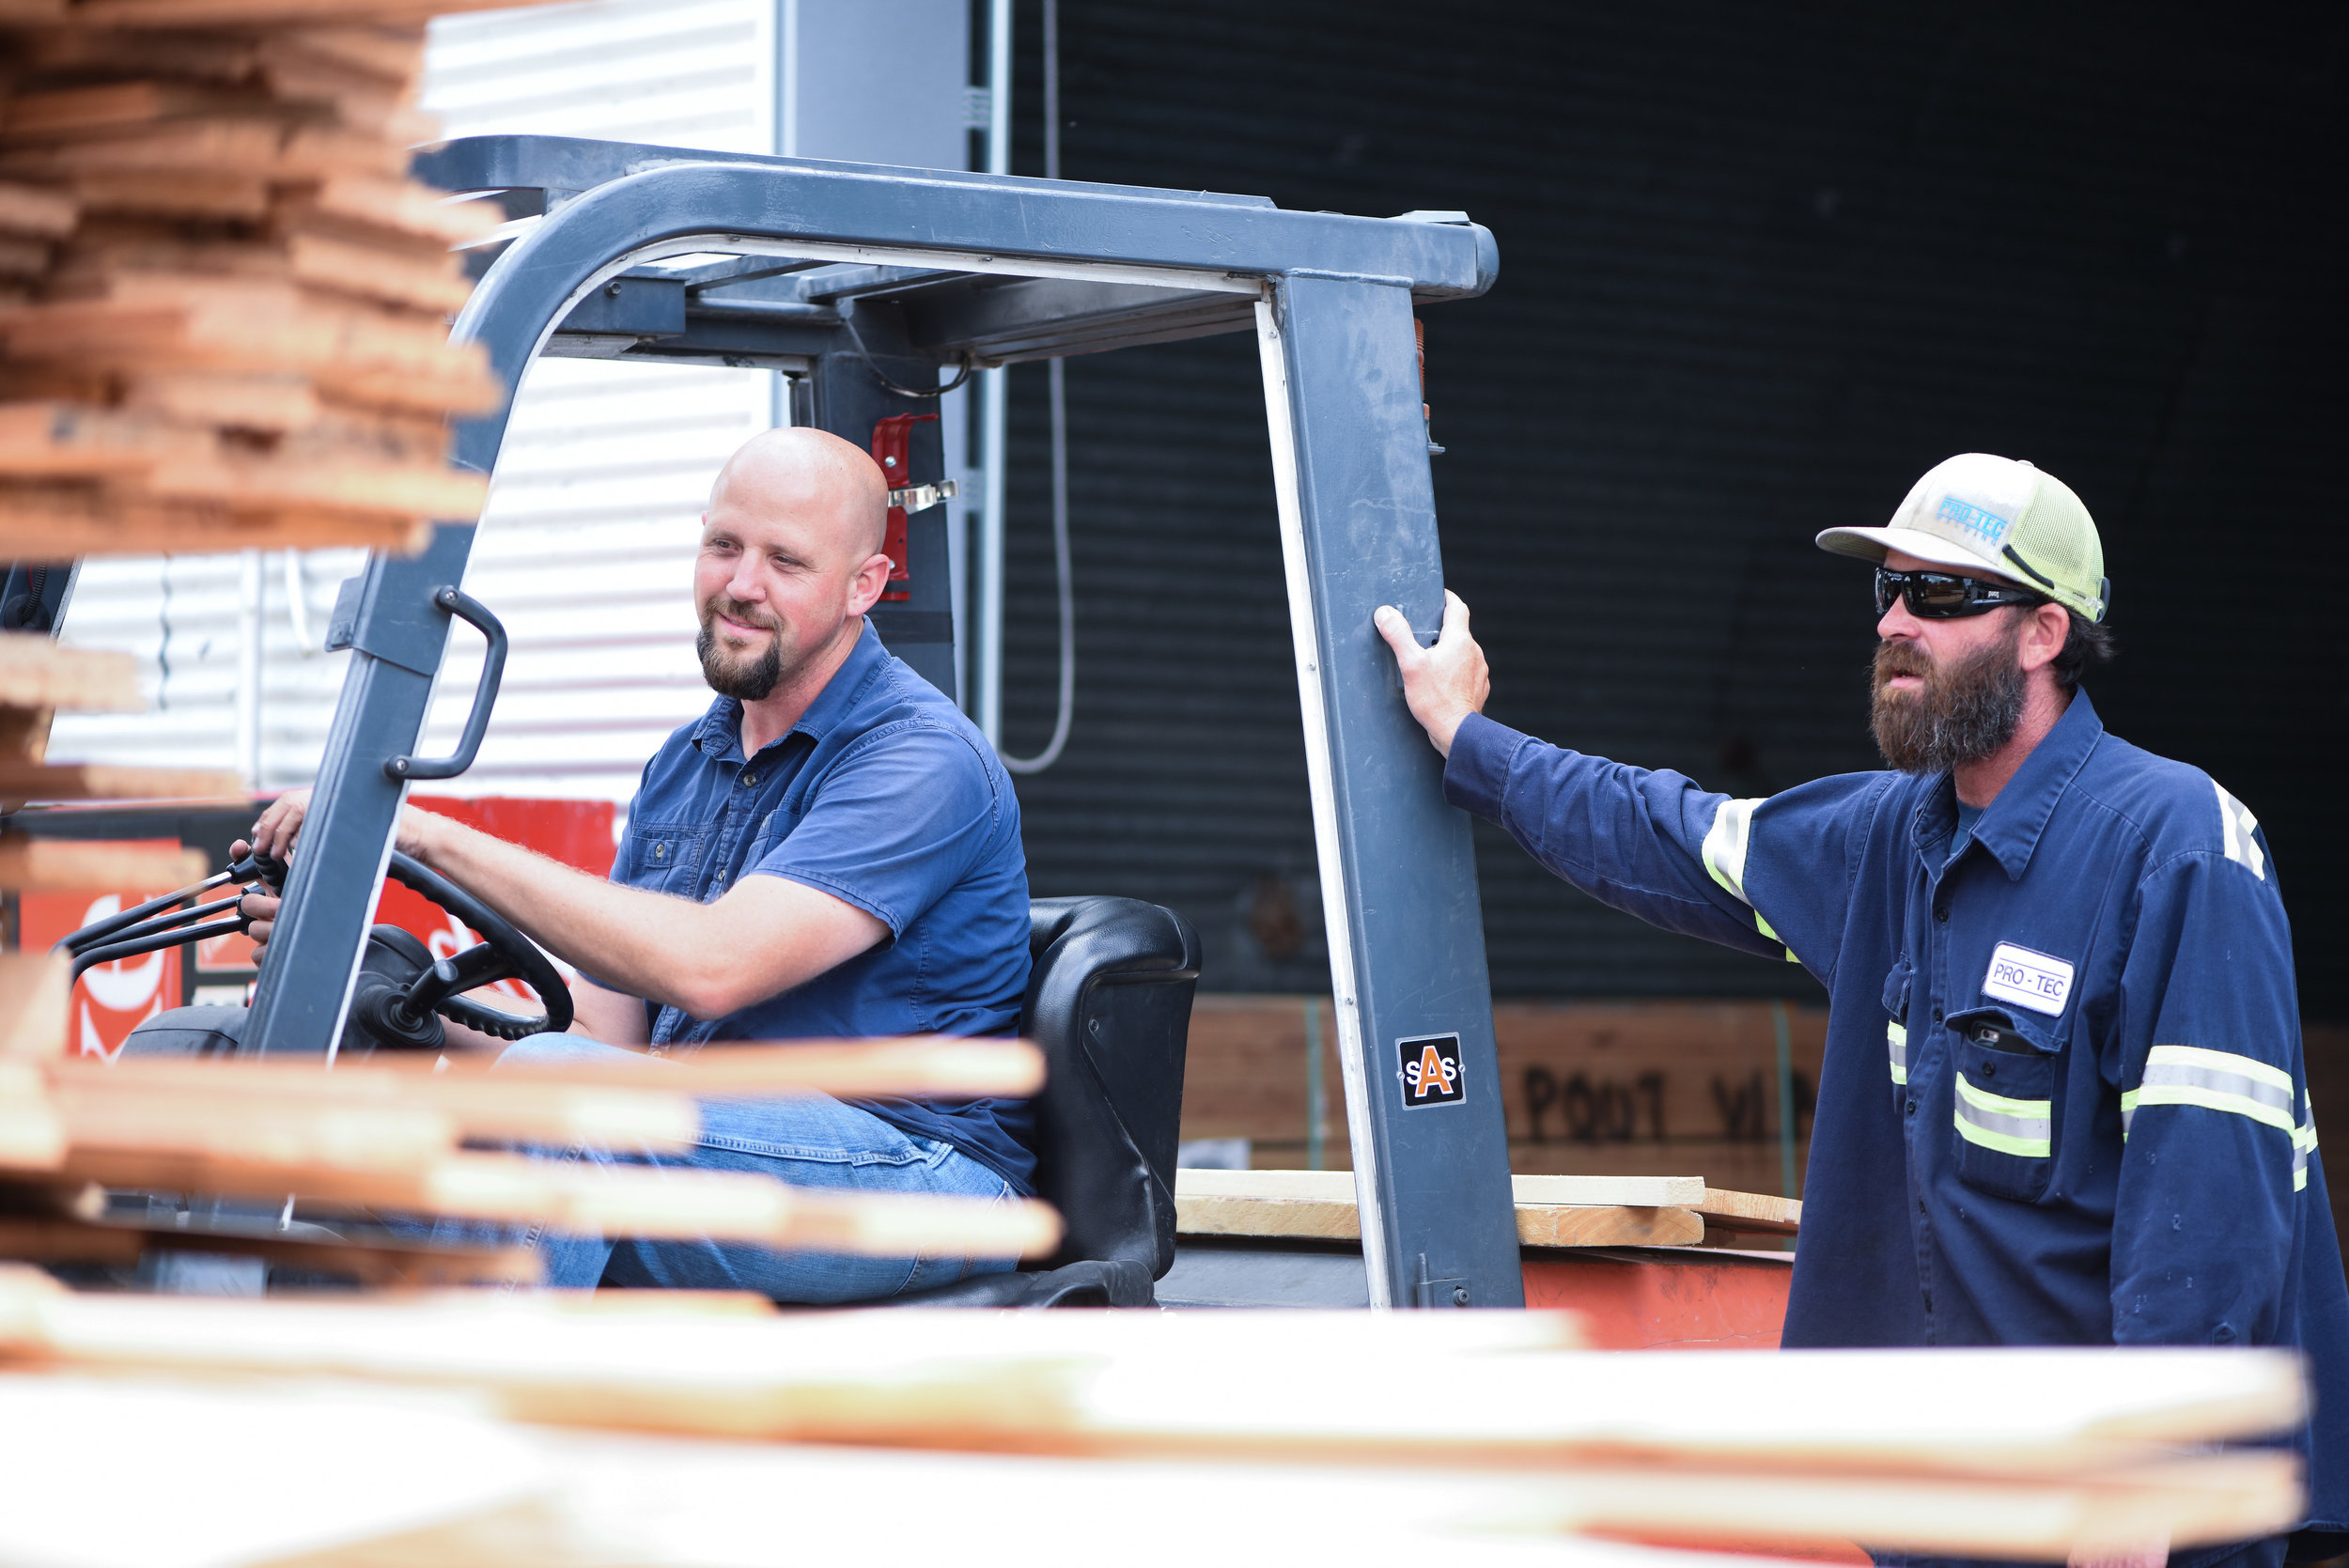 Kentucky Lumber team of employees loading a customer